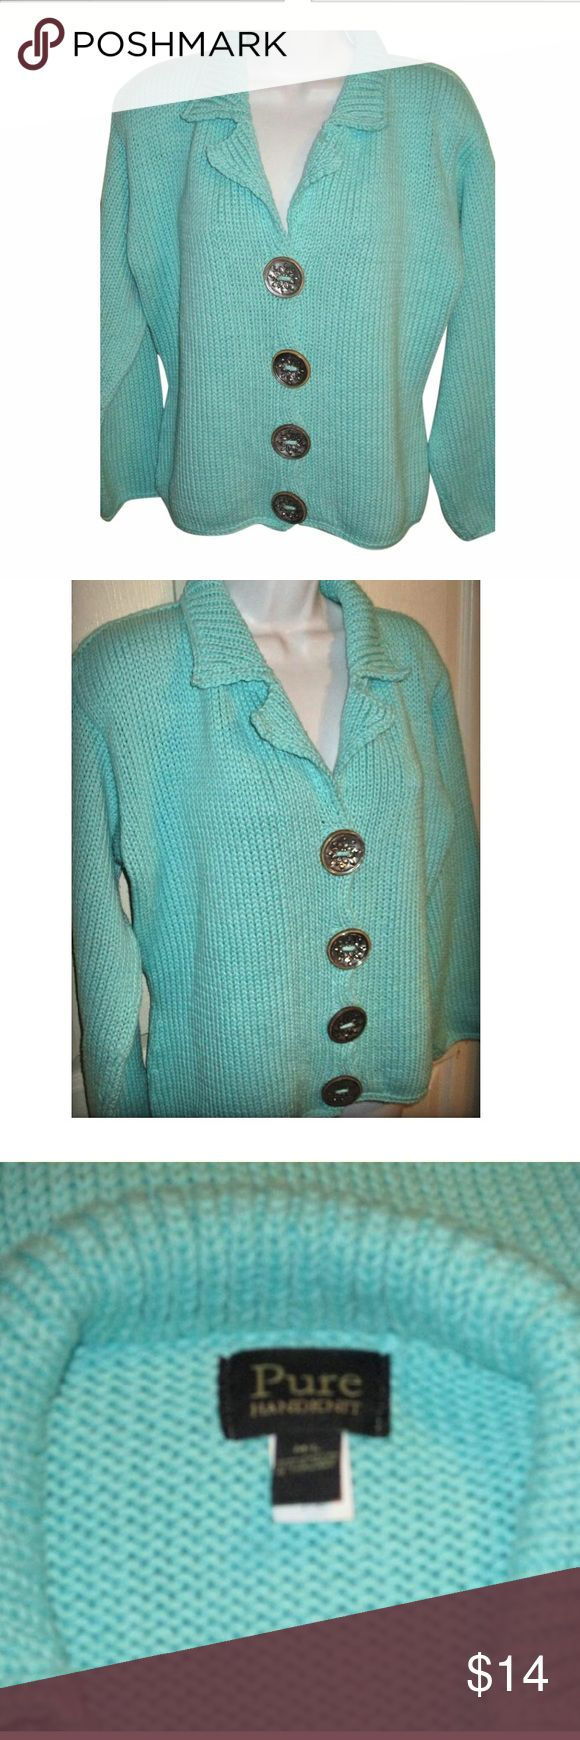 PURE Handknit Turquoise Cardigan SZ M/L This is stunning and I love this color!  Bust measures 48 inches and length is 23 inches  Material is 100% Cotton SIZE is M/L Pure Handknit Sweaters Cardigans